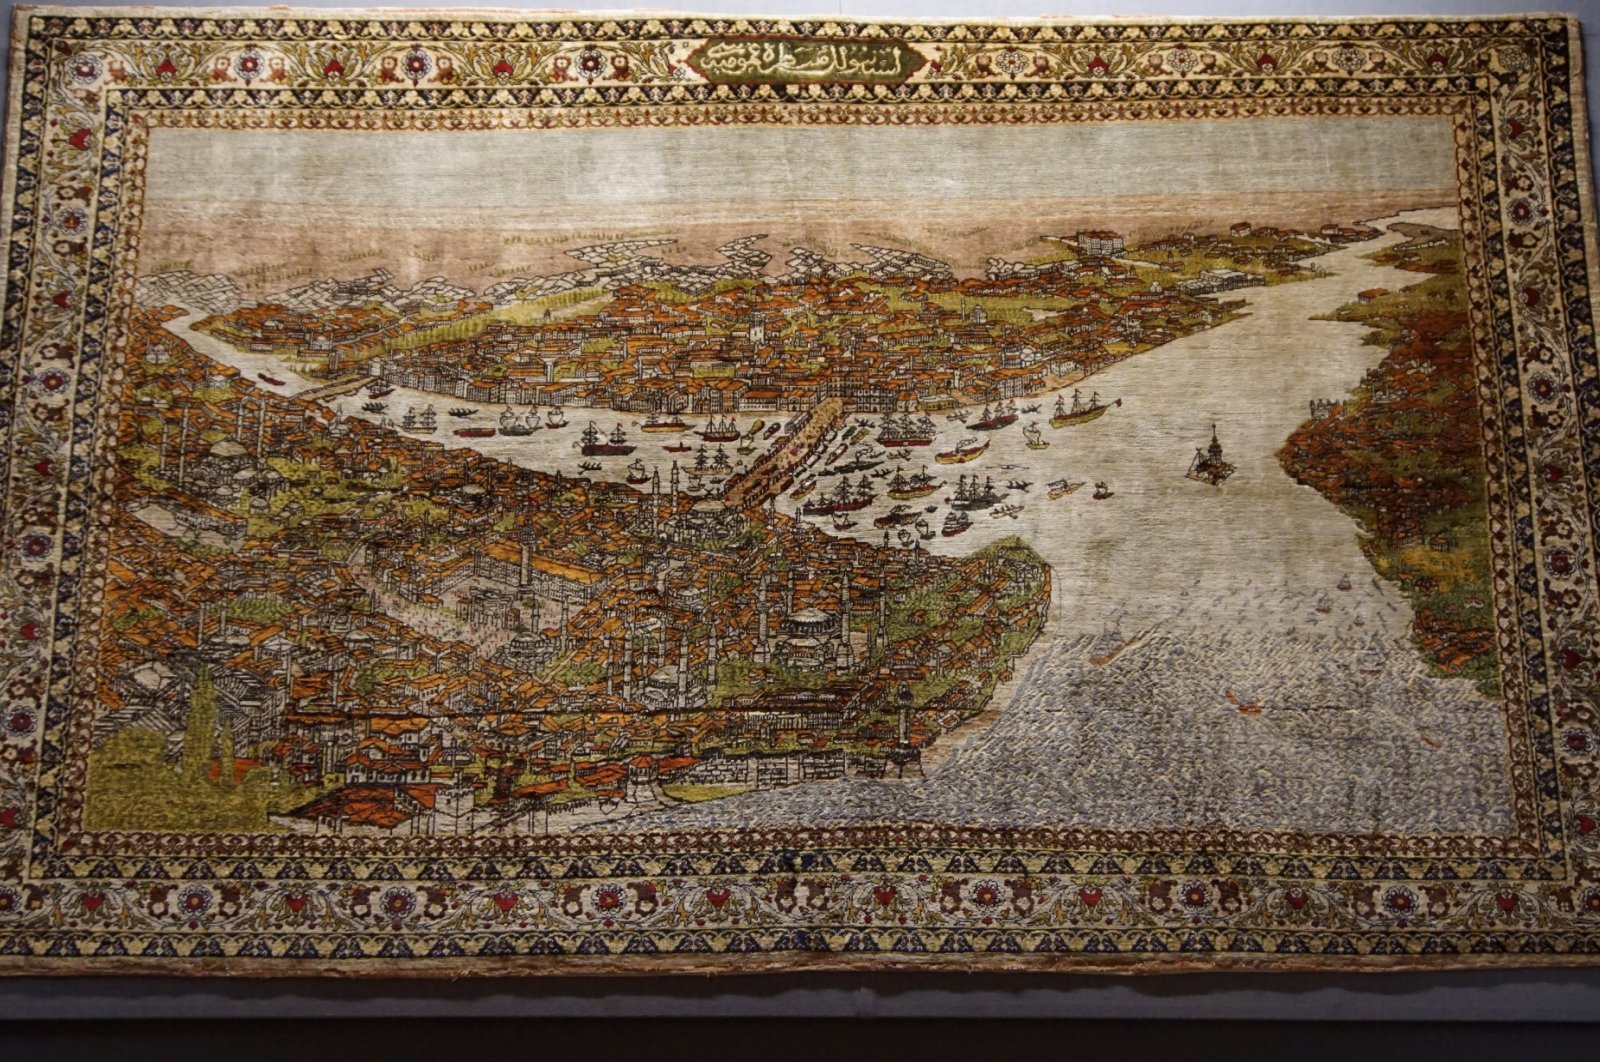 A historical artwork depicting Istanbul in the Museum of Turkish and Islamic Arts. (Photo by Murat Tarık)